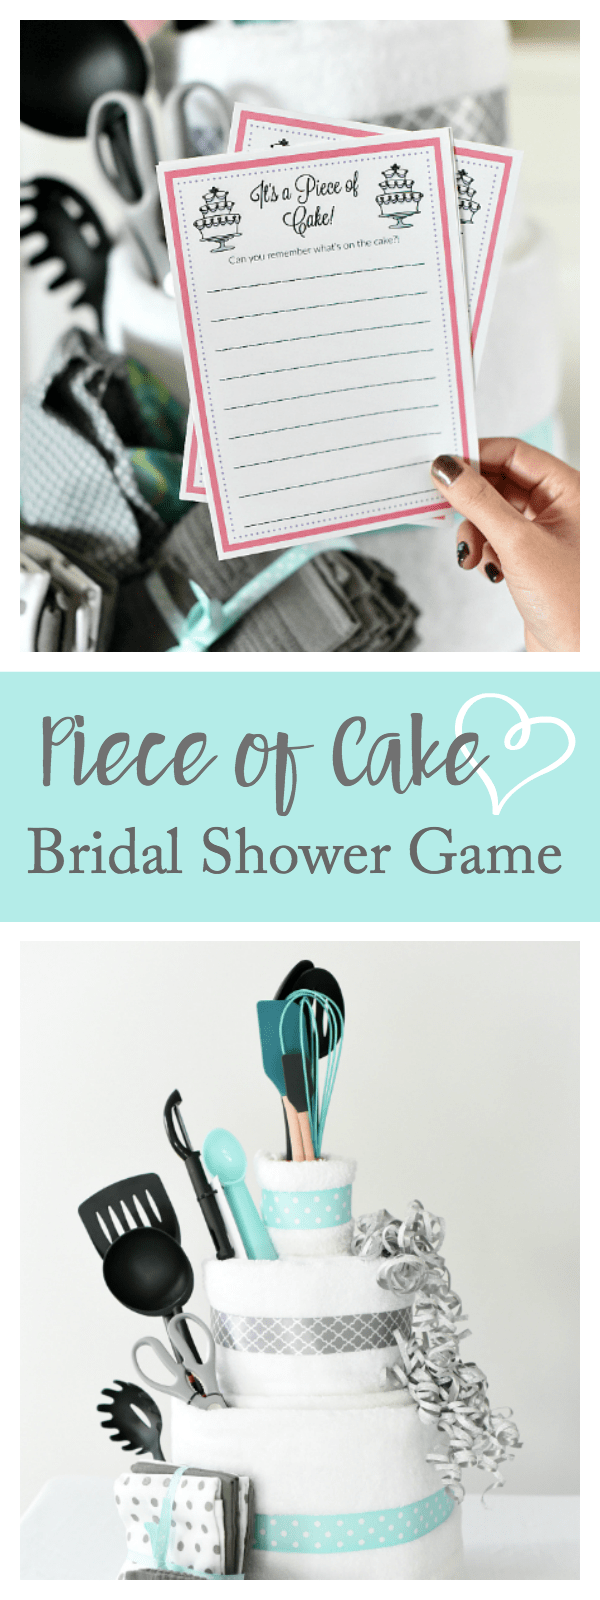 Fun Bridal Shower Game Idea-Piece of Cake Memory Game. This fun bridal shower game is perfect for your next party. #bridalshowergames #fungames #funwithbridalshowergames